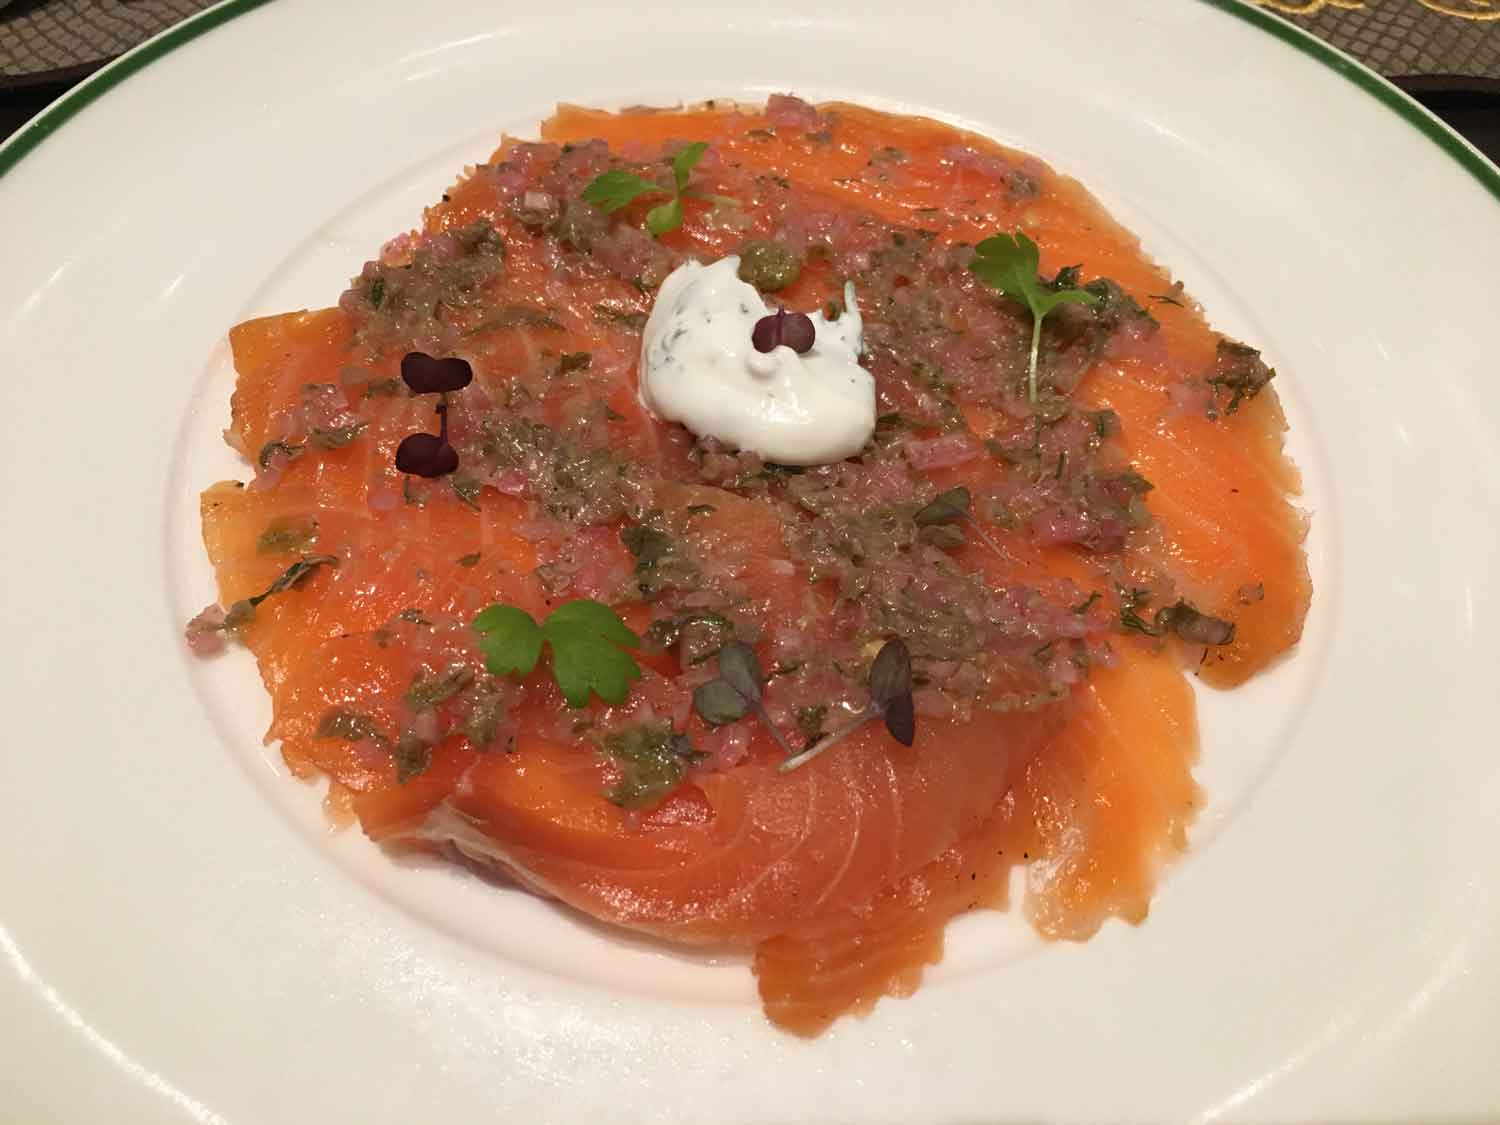 Brassiere Macau home cured salmon with dill